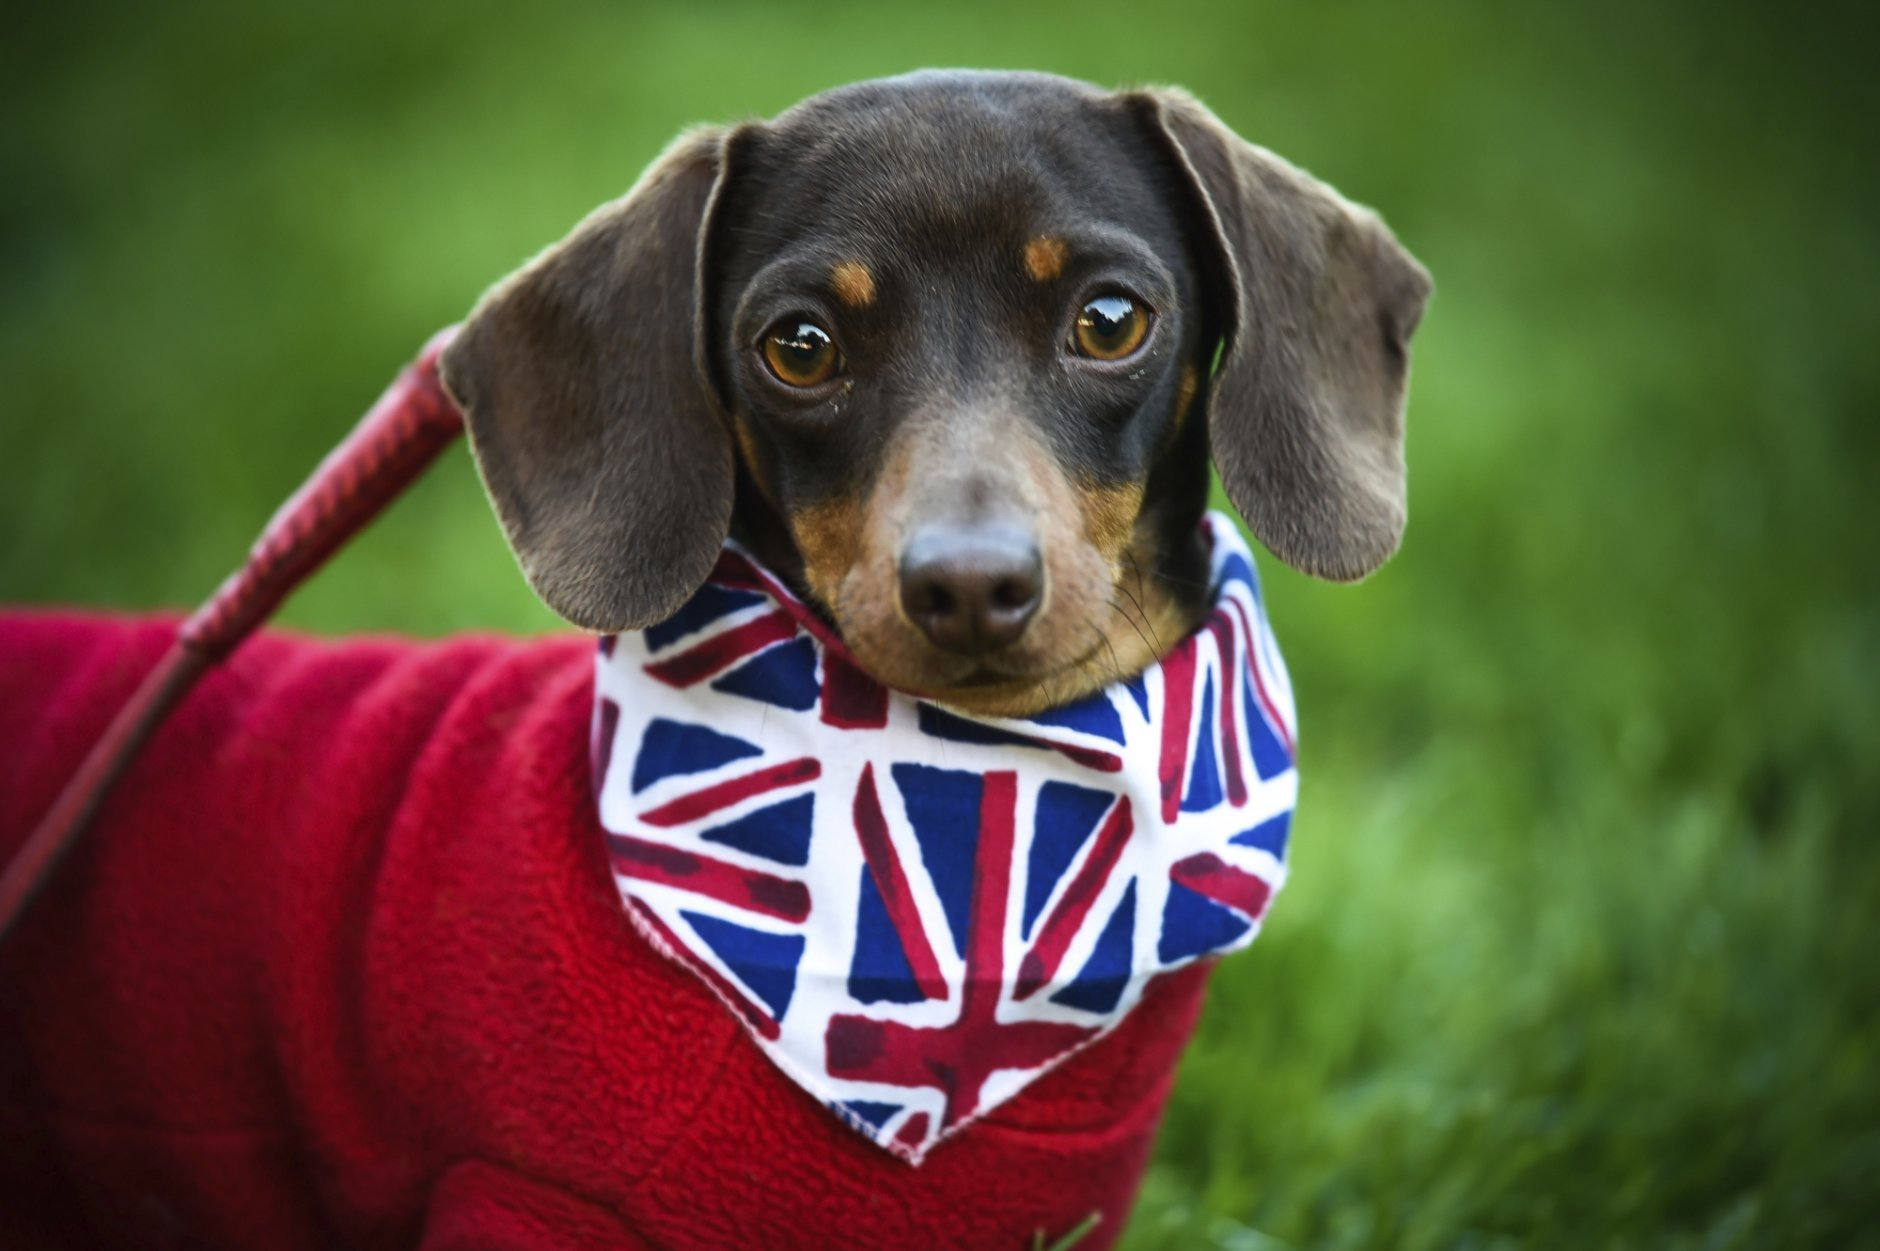 A dog wears a Union flag bandana in Windsor ahead of the wedding of Prince Harry and Meghan Markle at Windsor Castle near London Saturday, May 19, 2018. (Peter Summers/PA via AP)